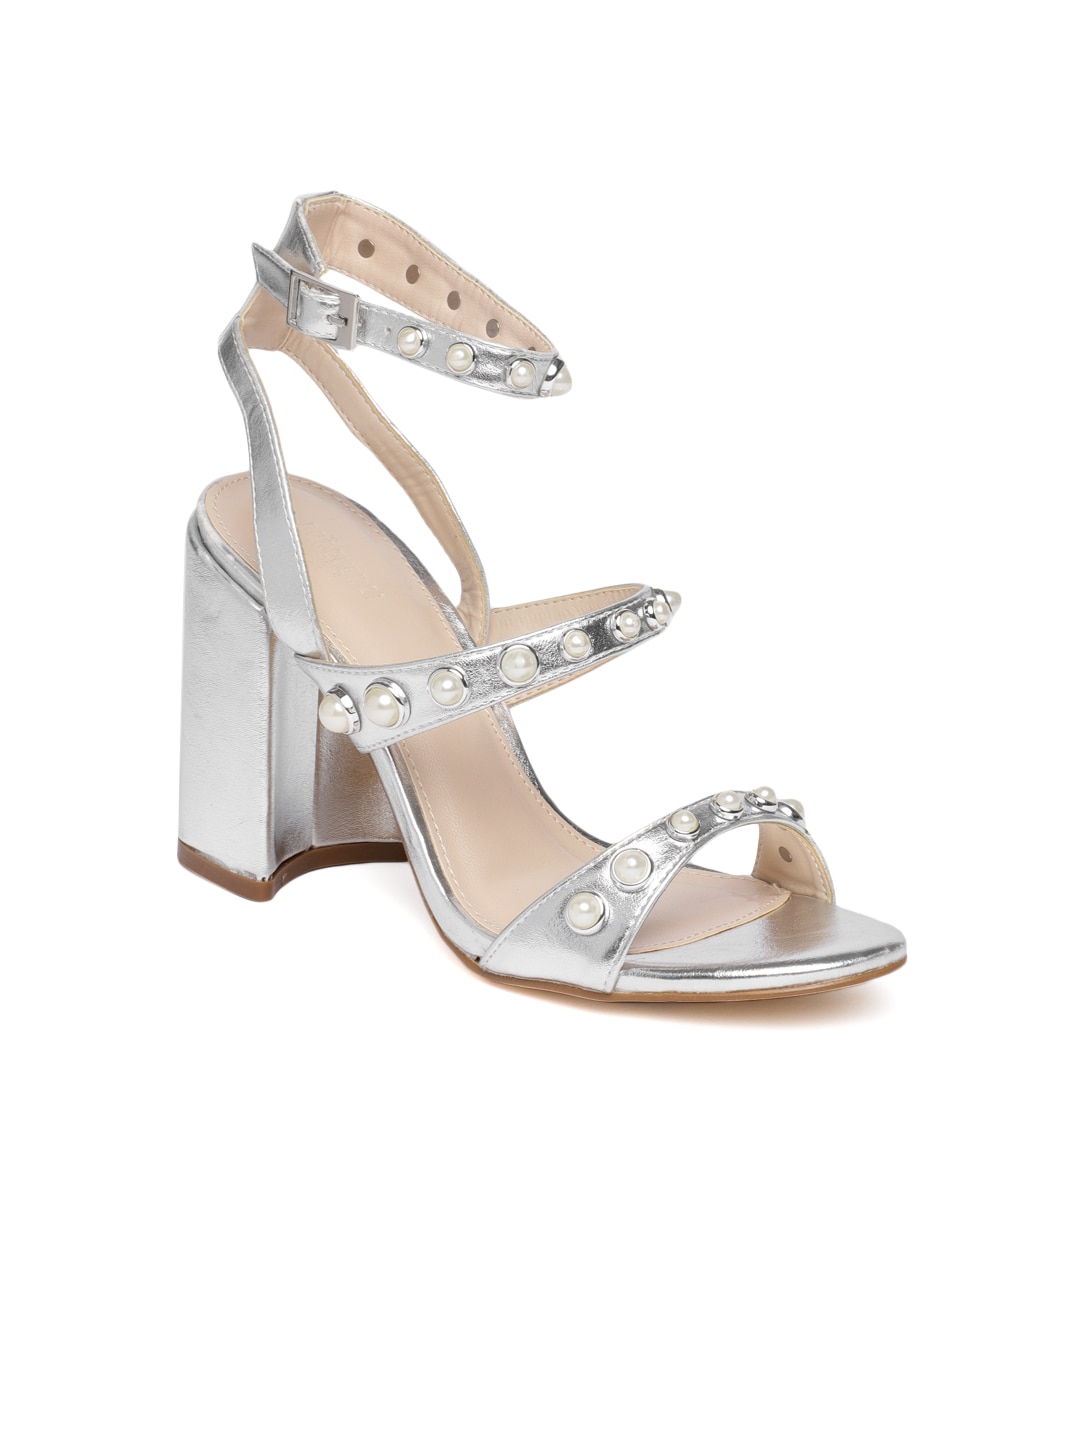 9ebdfc53b50 FOREVER 21 Shoes - Buy FOREVER 21 Shoes Online in India